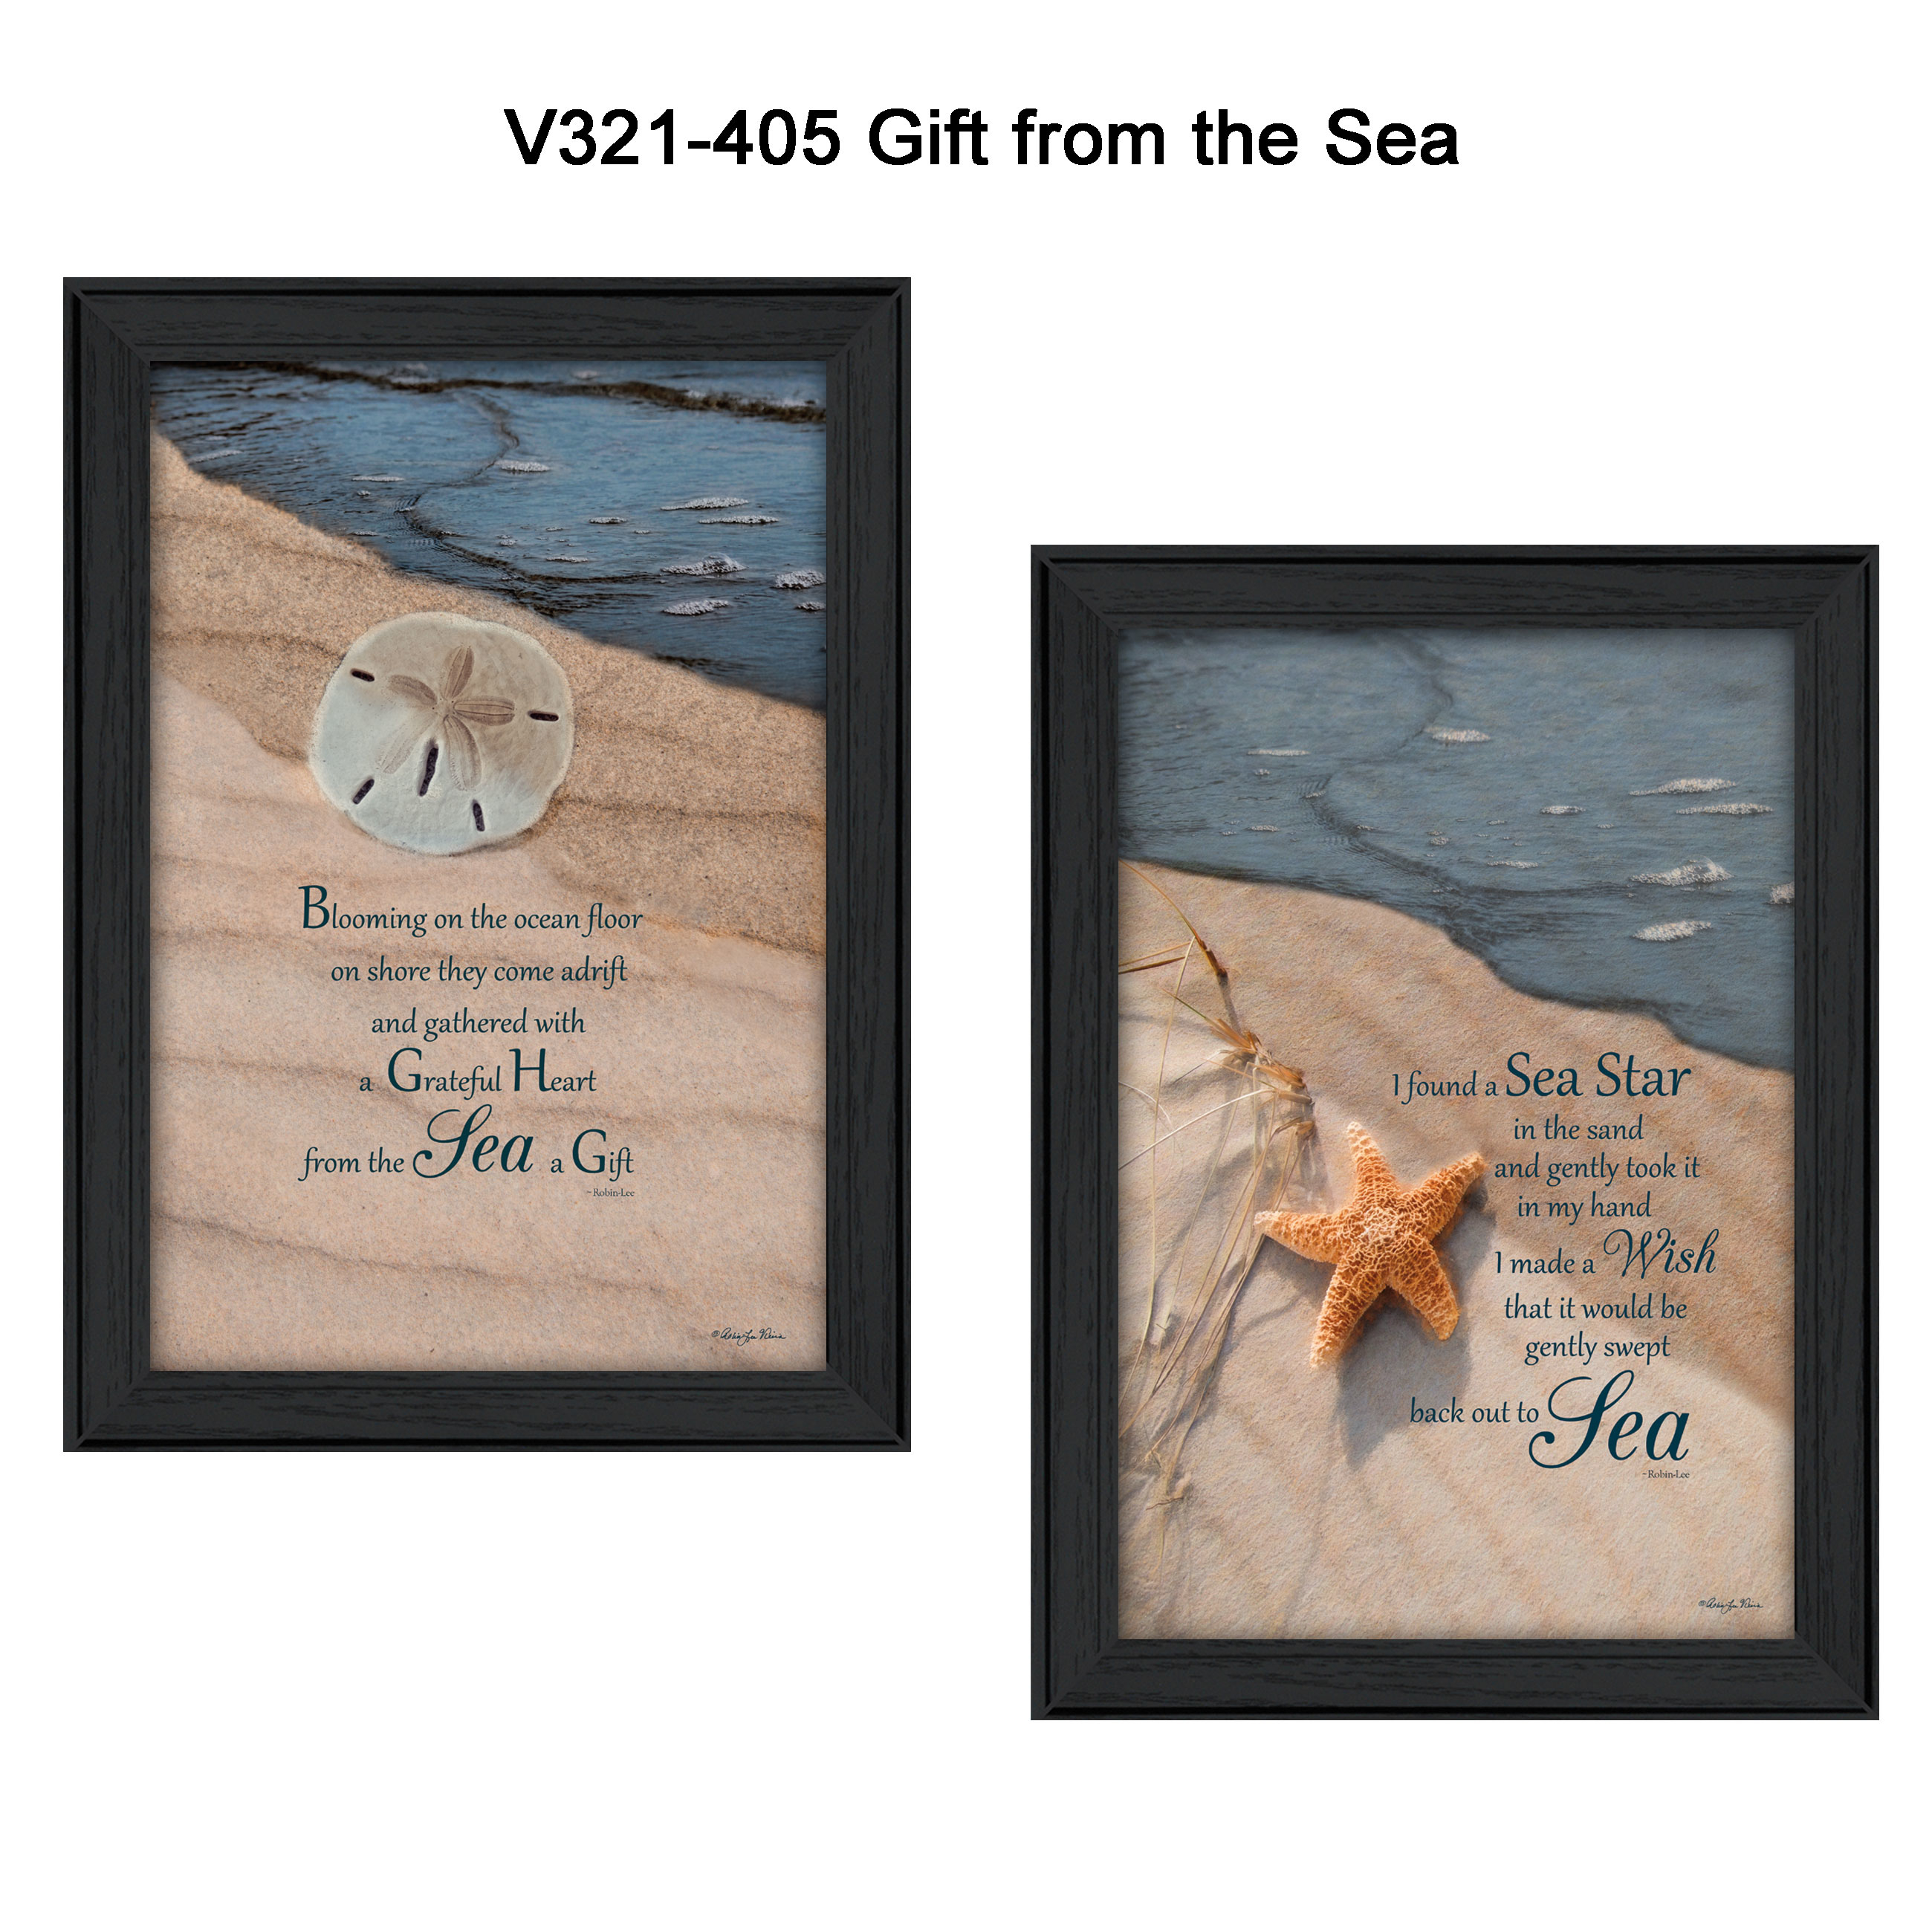 """A Gift from the Sea"" are 2- 15""x21"" framed art prints by Robin Vieira. This print is a framed in a decorative black frame. A Gift from the beach???Sand Dollar. The print has a protective, archival finish (glass is not needed) and arrives ready to hang. * Made in the USA * Women Owned (Wbe) * Textured Artwork with a 'rolled on' acid free acrylic coating to create a canvas painting effect. No glass is necessary. * UV protectant coating protects artwork from fading. * Arrives Ready to Hang"